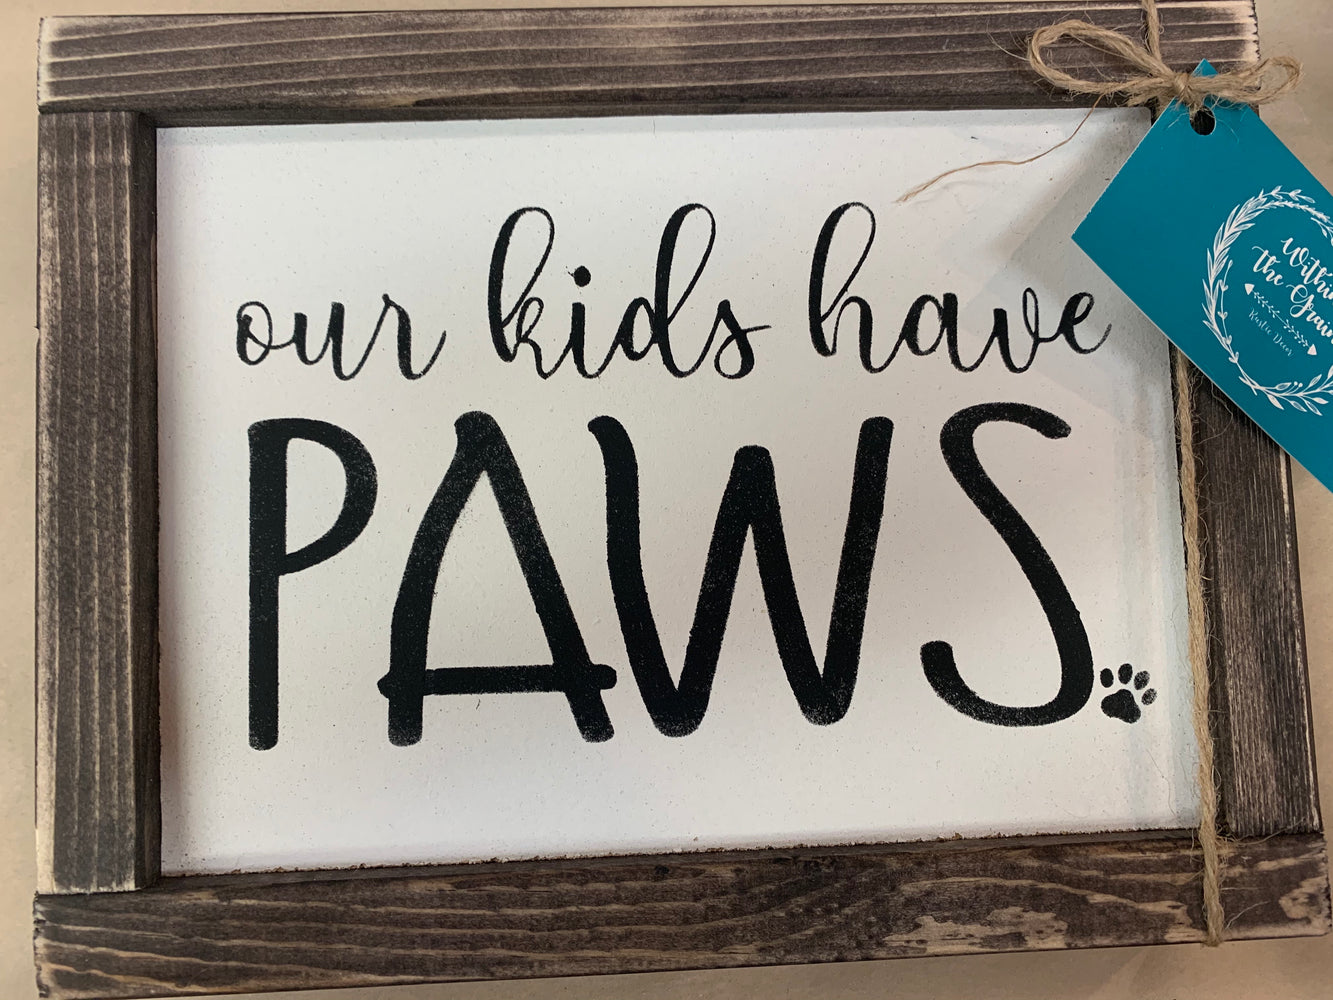 Our Kids have paws - Art Consign